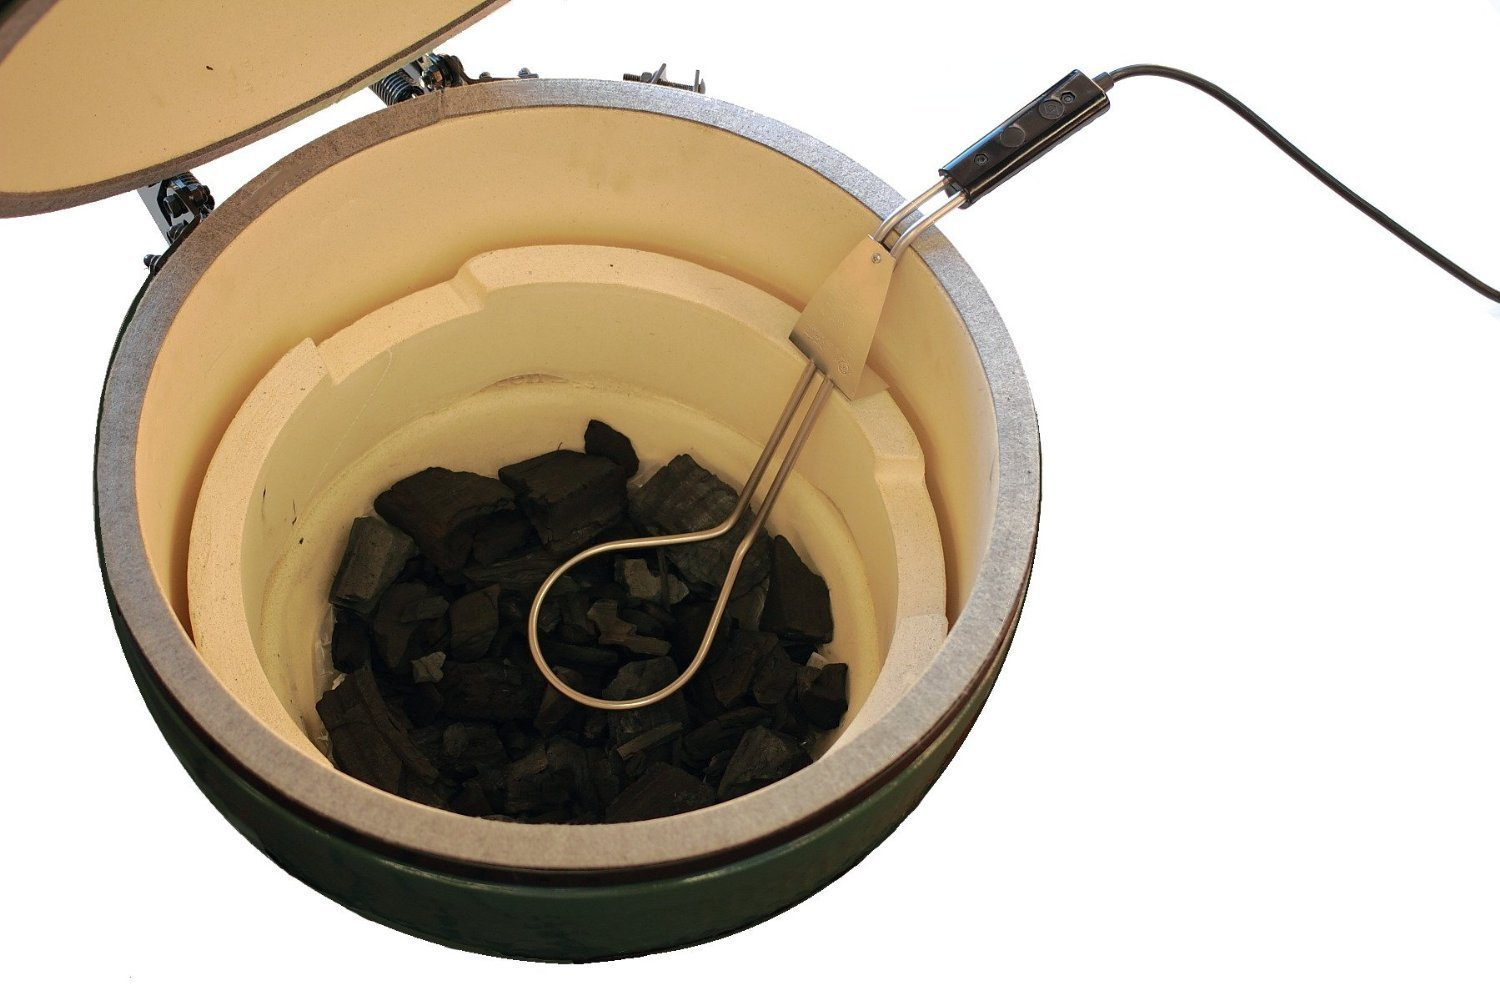 Jur_Global Electric Charcoal Starter by Premium Products Perfect for Big Green Egg, Kamado Joe & Weber Kettle Grills - Adjustable Height, 600 Watt Strong - Great for Lump Charcoal